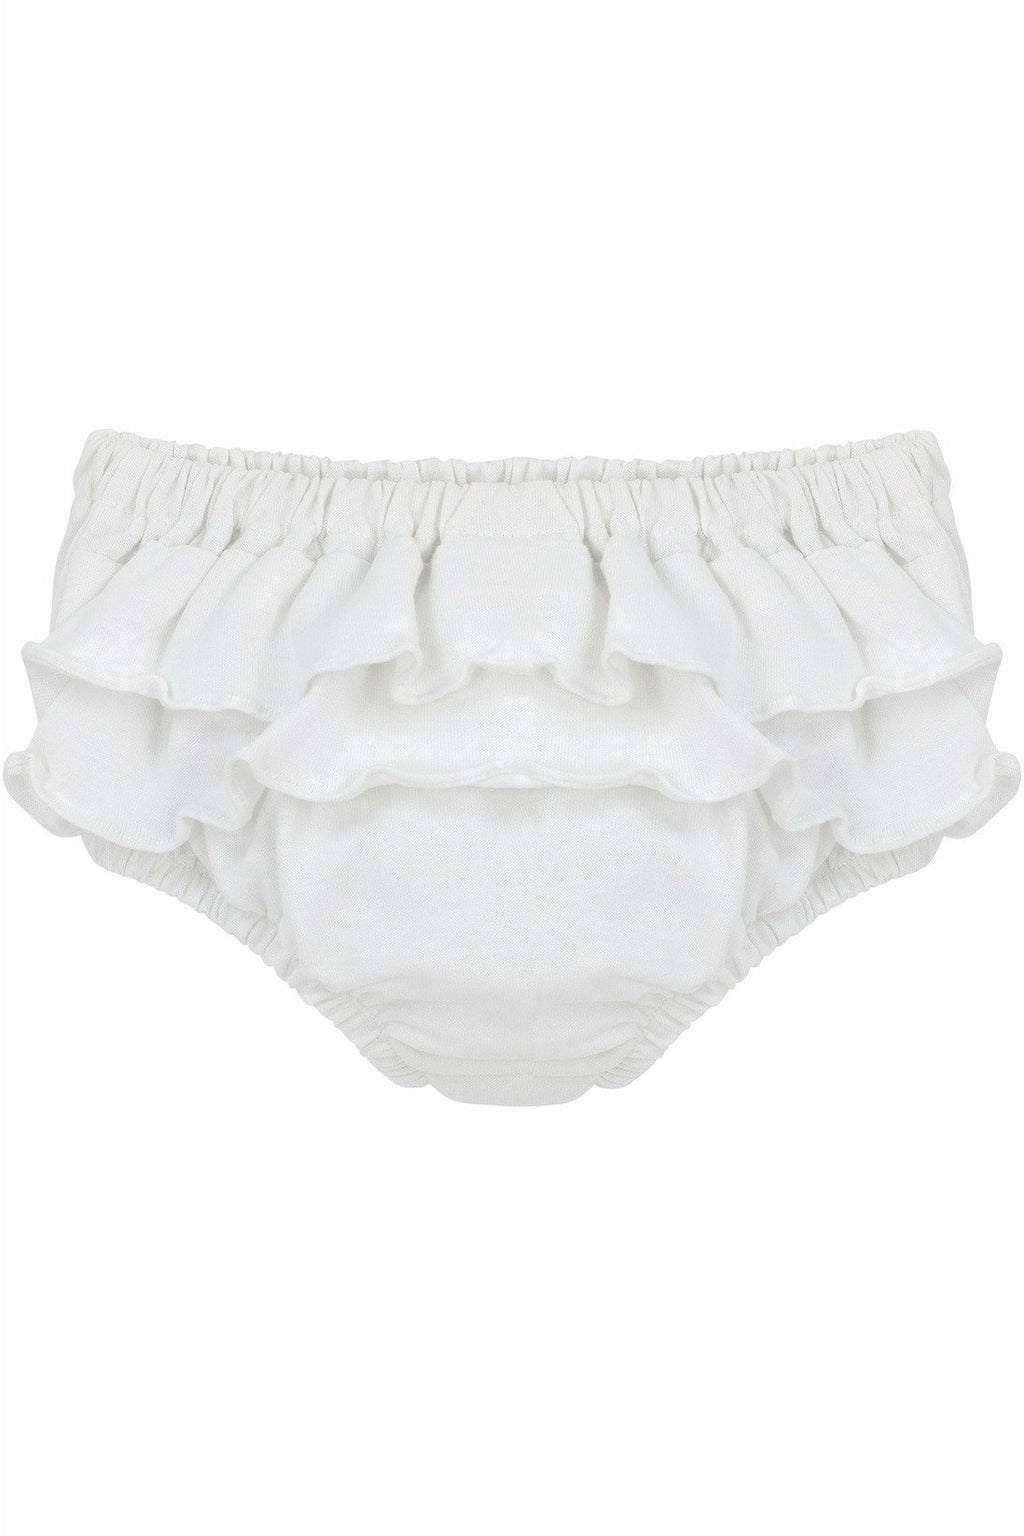 Carriage Boutique Baby Girls Cotton Panty Diaper Covers Ruffled White Flowers